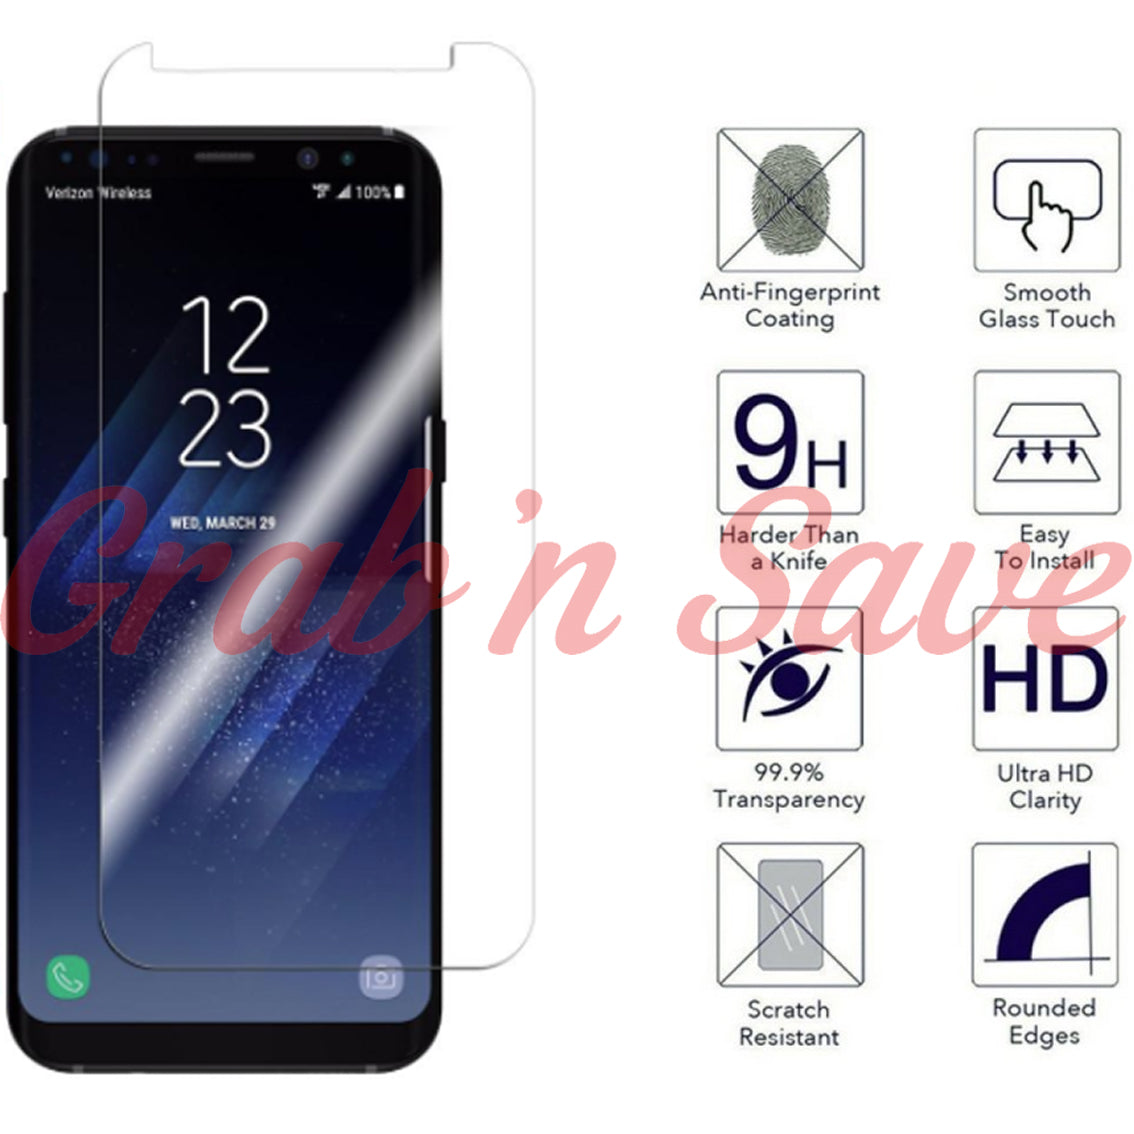 Samsung S8 Plus Screen Protector, Glass Screen Protector, Tempered Glass Screen Protector